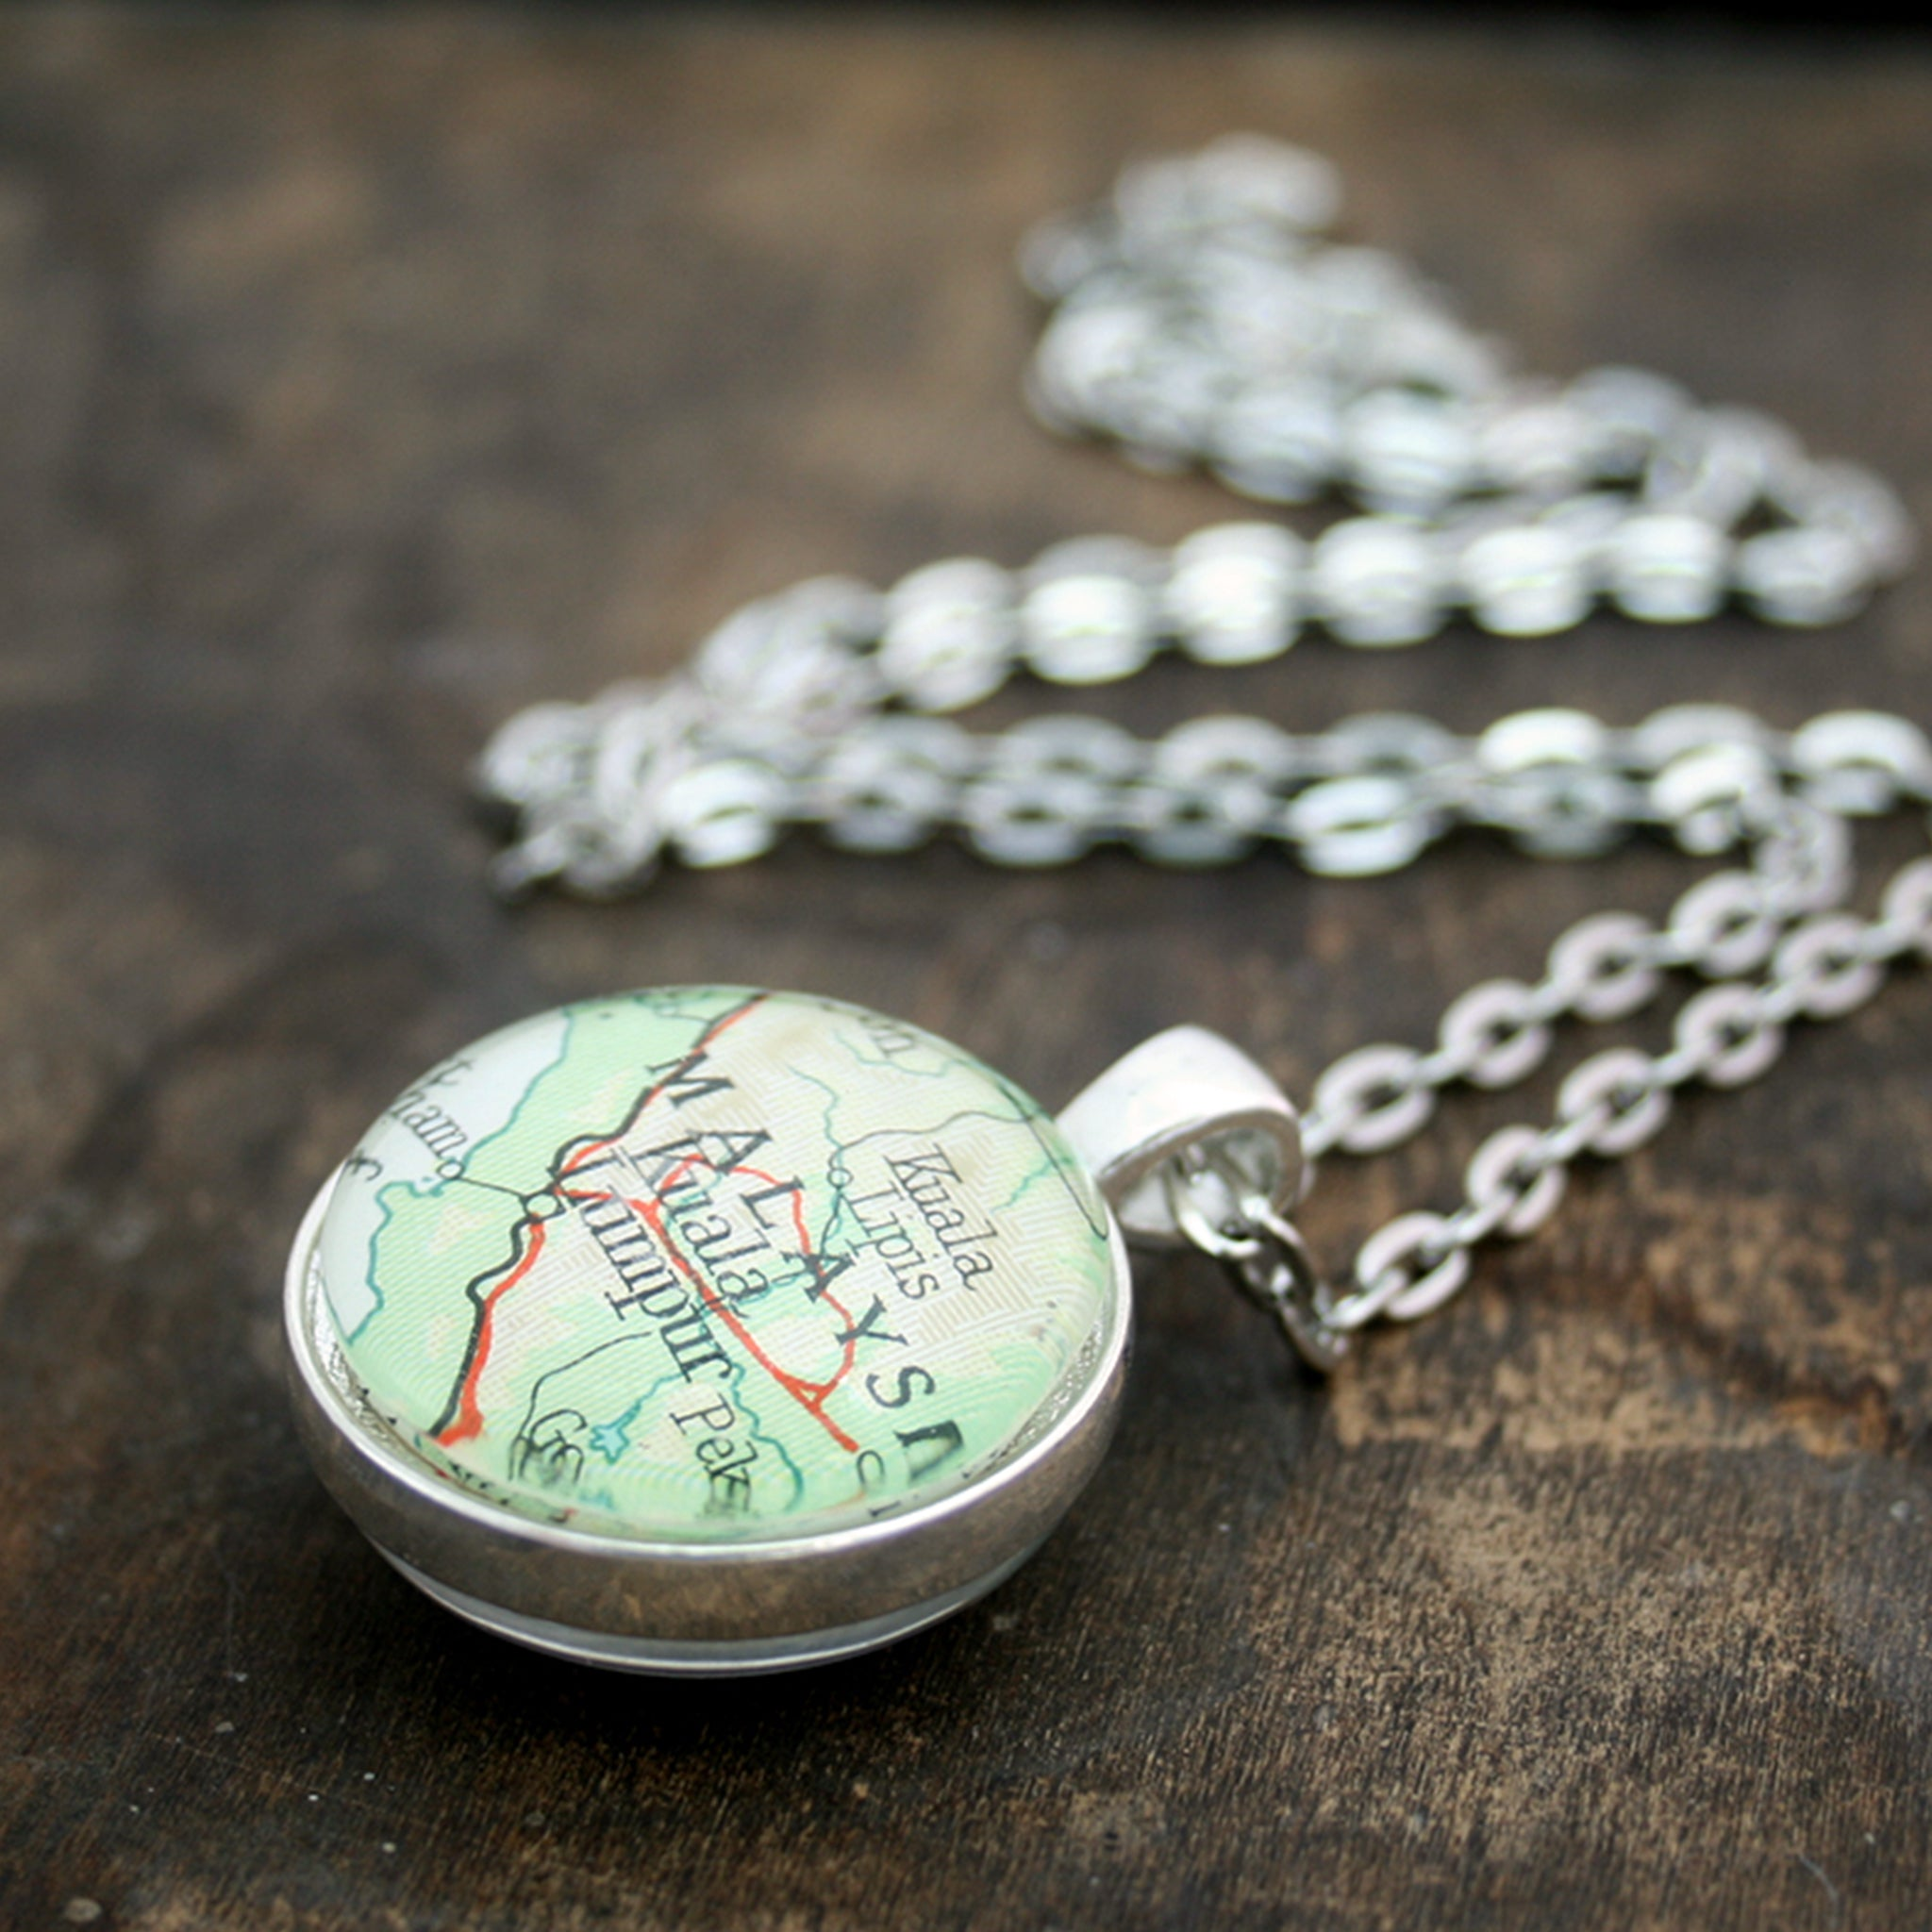 Silver tone double sided pendant necklace featuring map of Malaysia